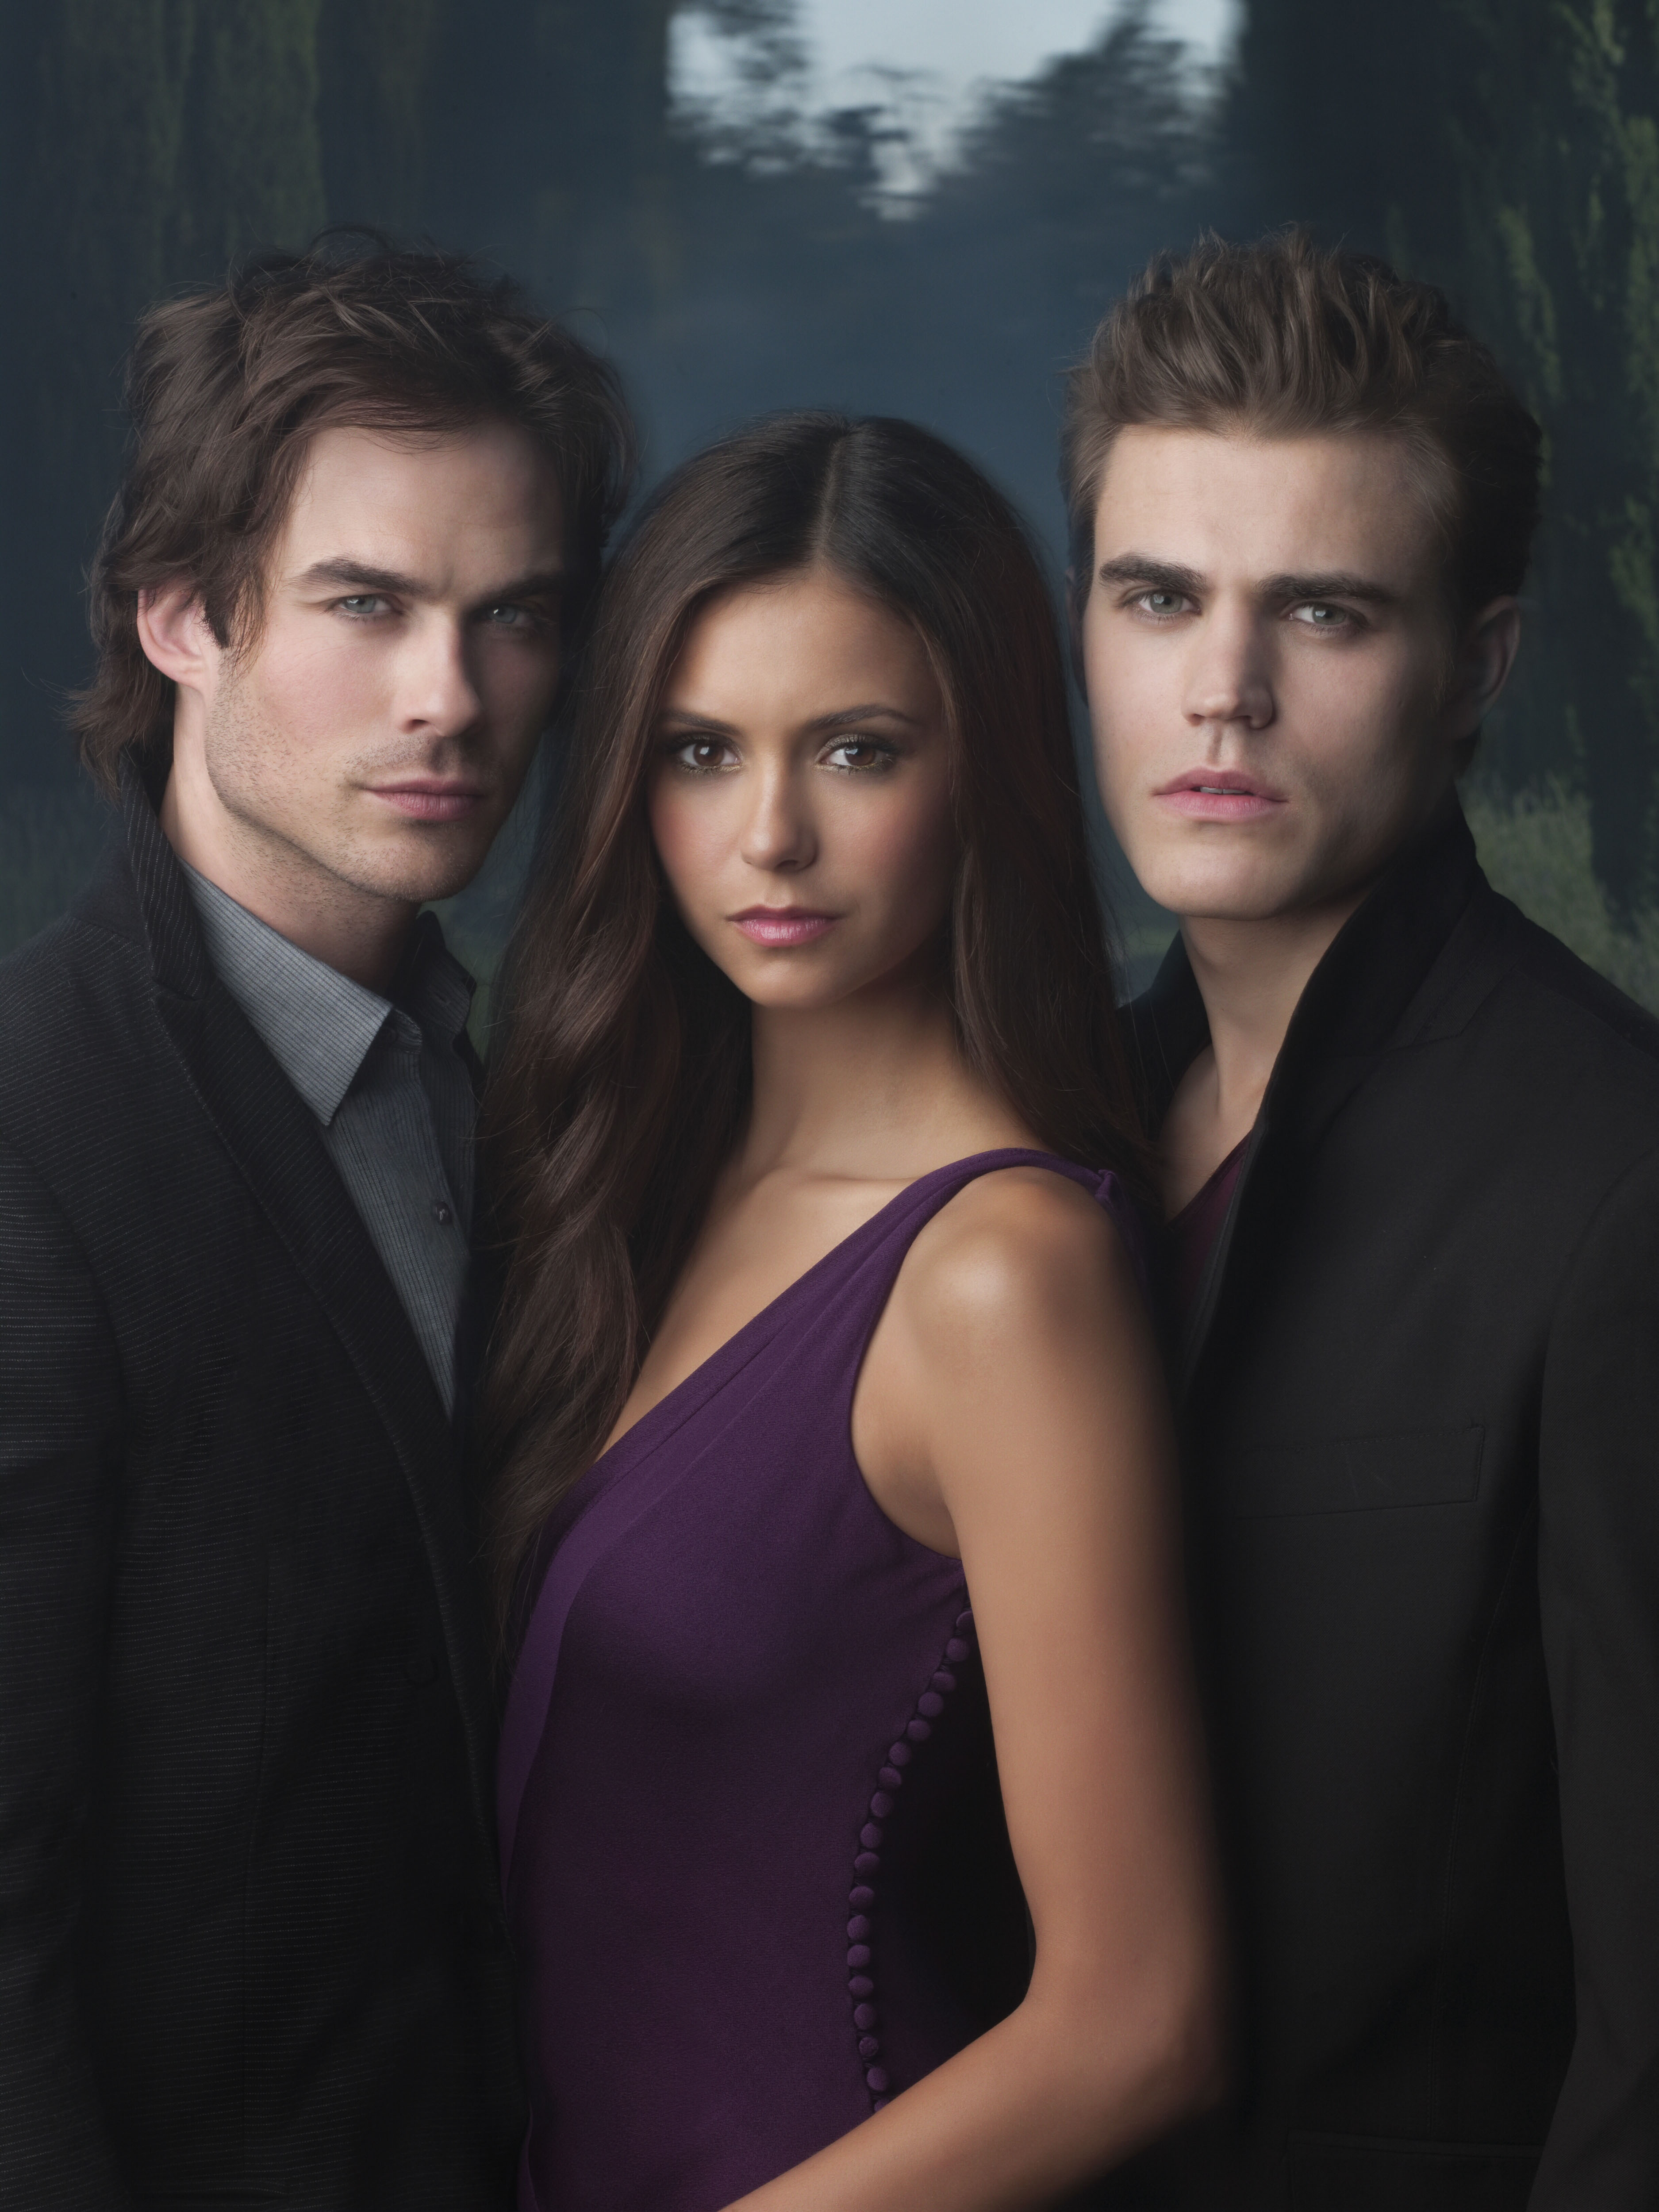 The Vampire Diaries Saison 1 : vampire, diaries, saison, Vampire, Diaries, Season, Promo, Photos, DVDbash